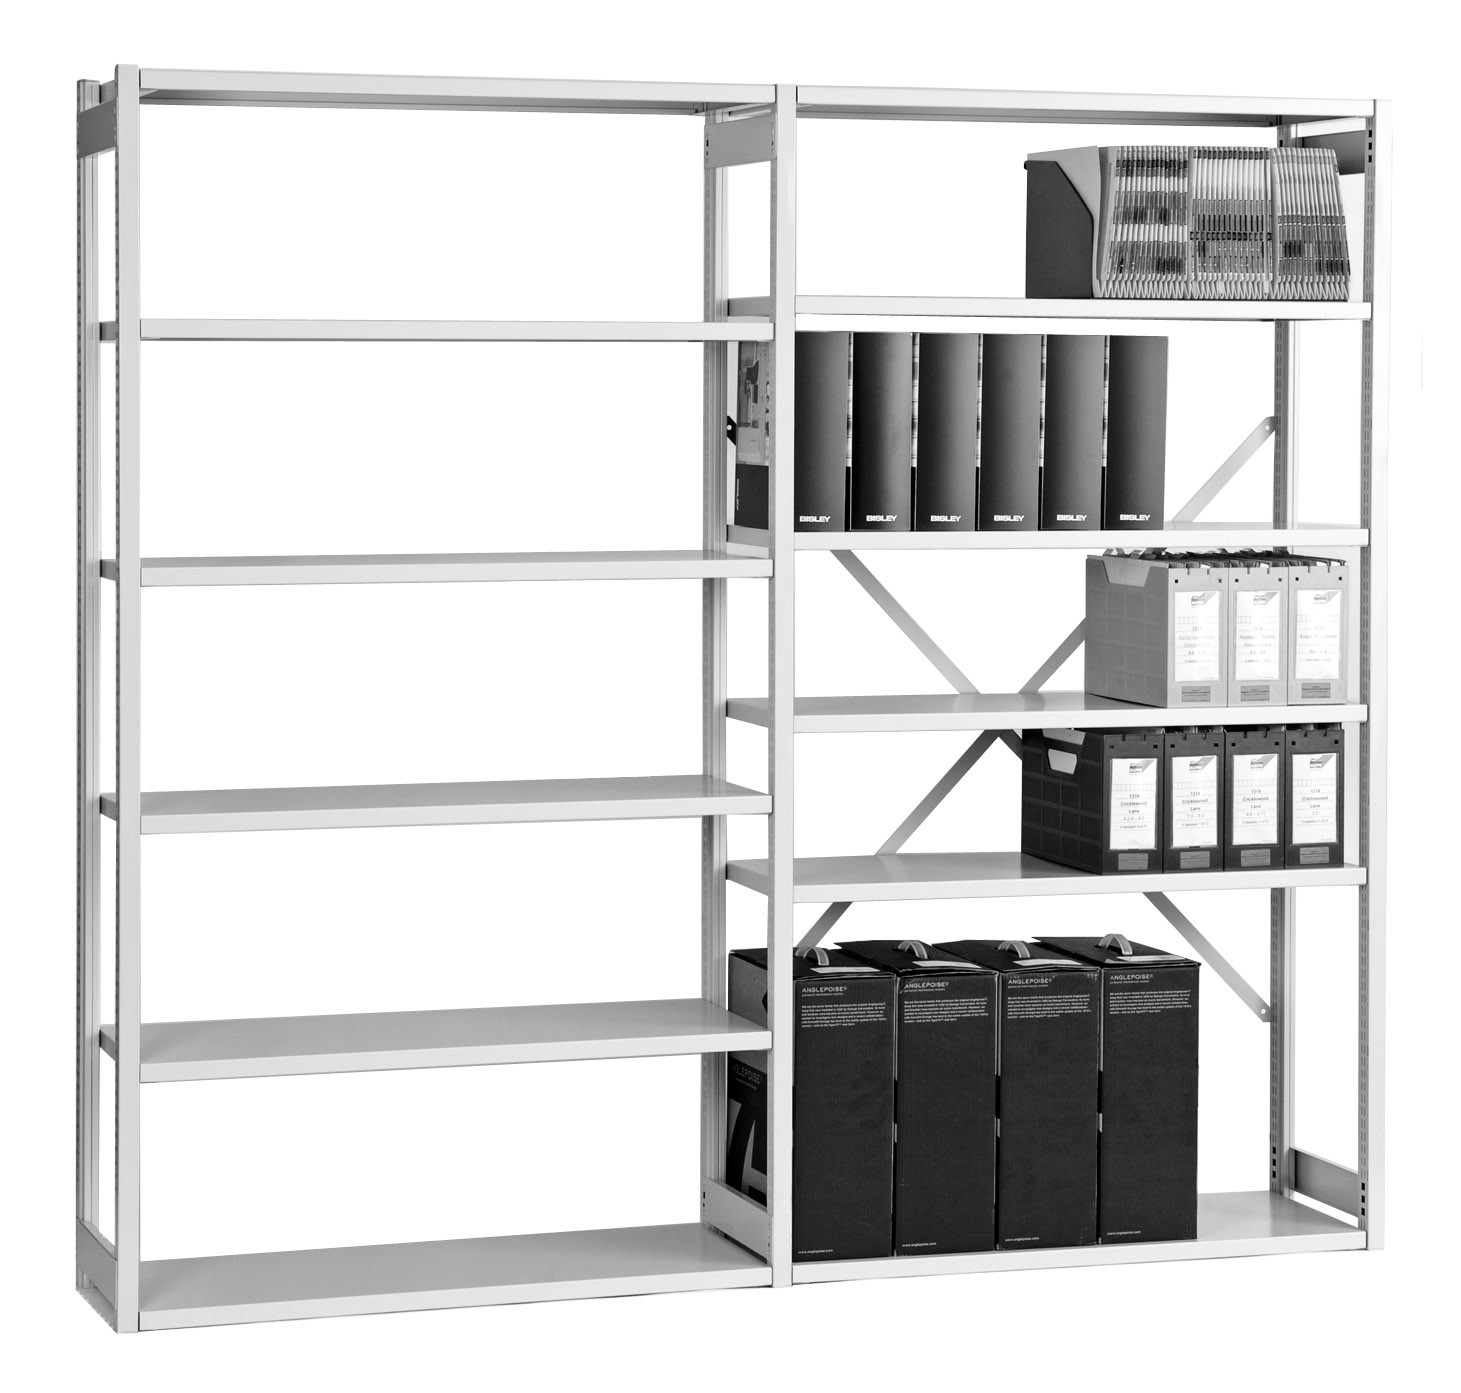 Bisley Steel Shelving Systems